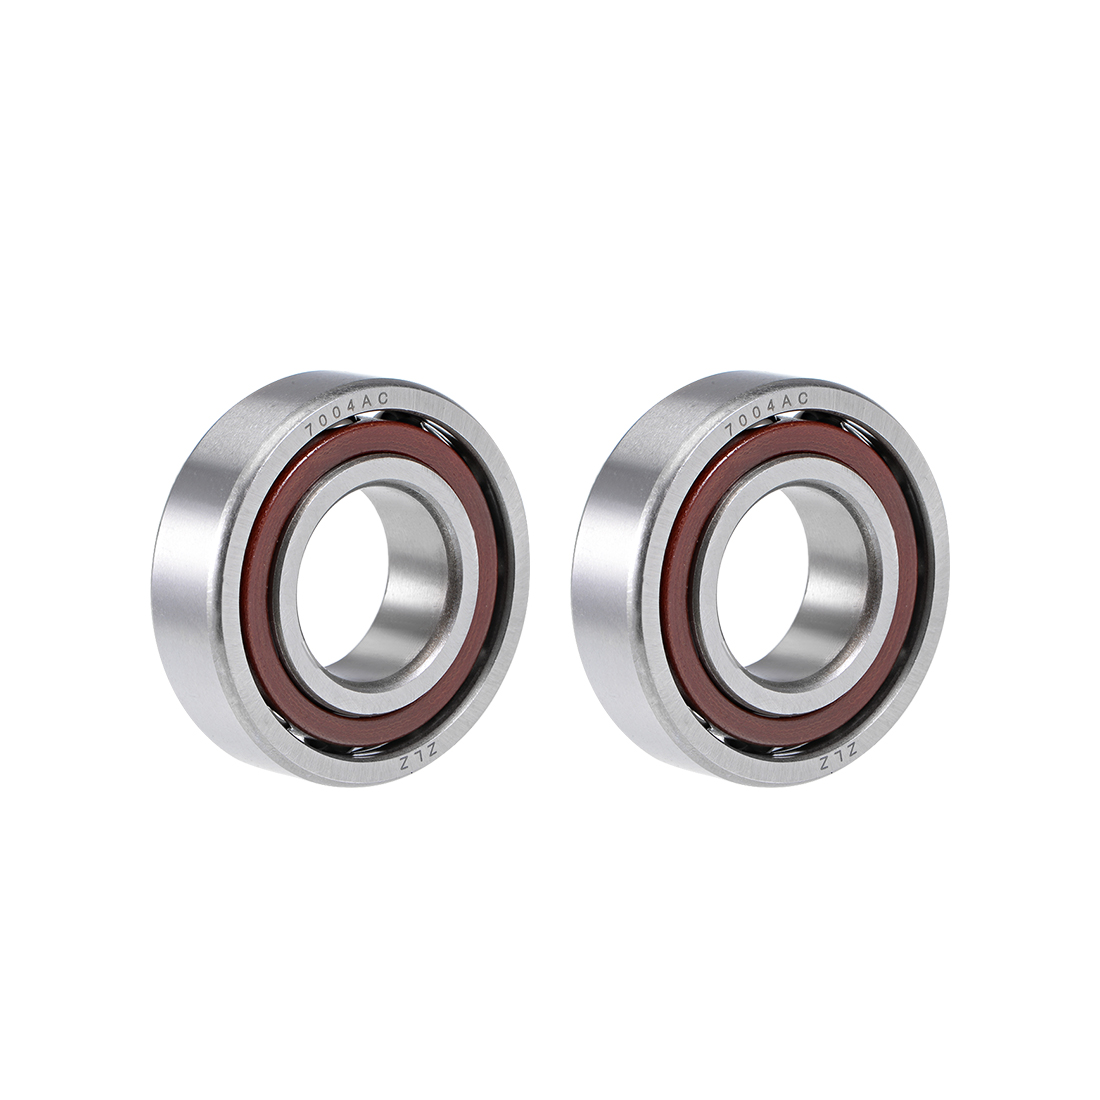 7004AC Angular Contact Ball Bearing 20x42x12mm, Single Row, Open Type 2pcs